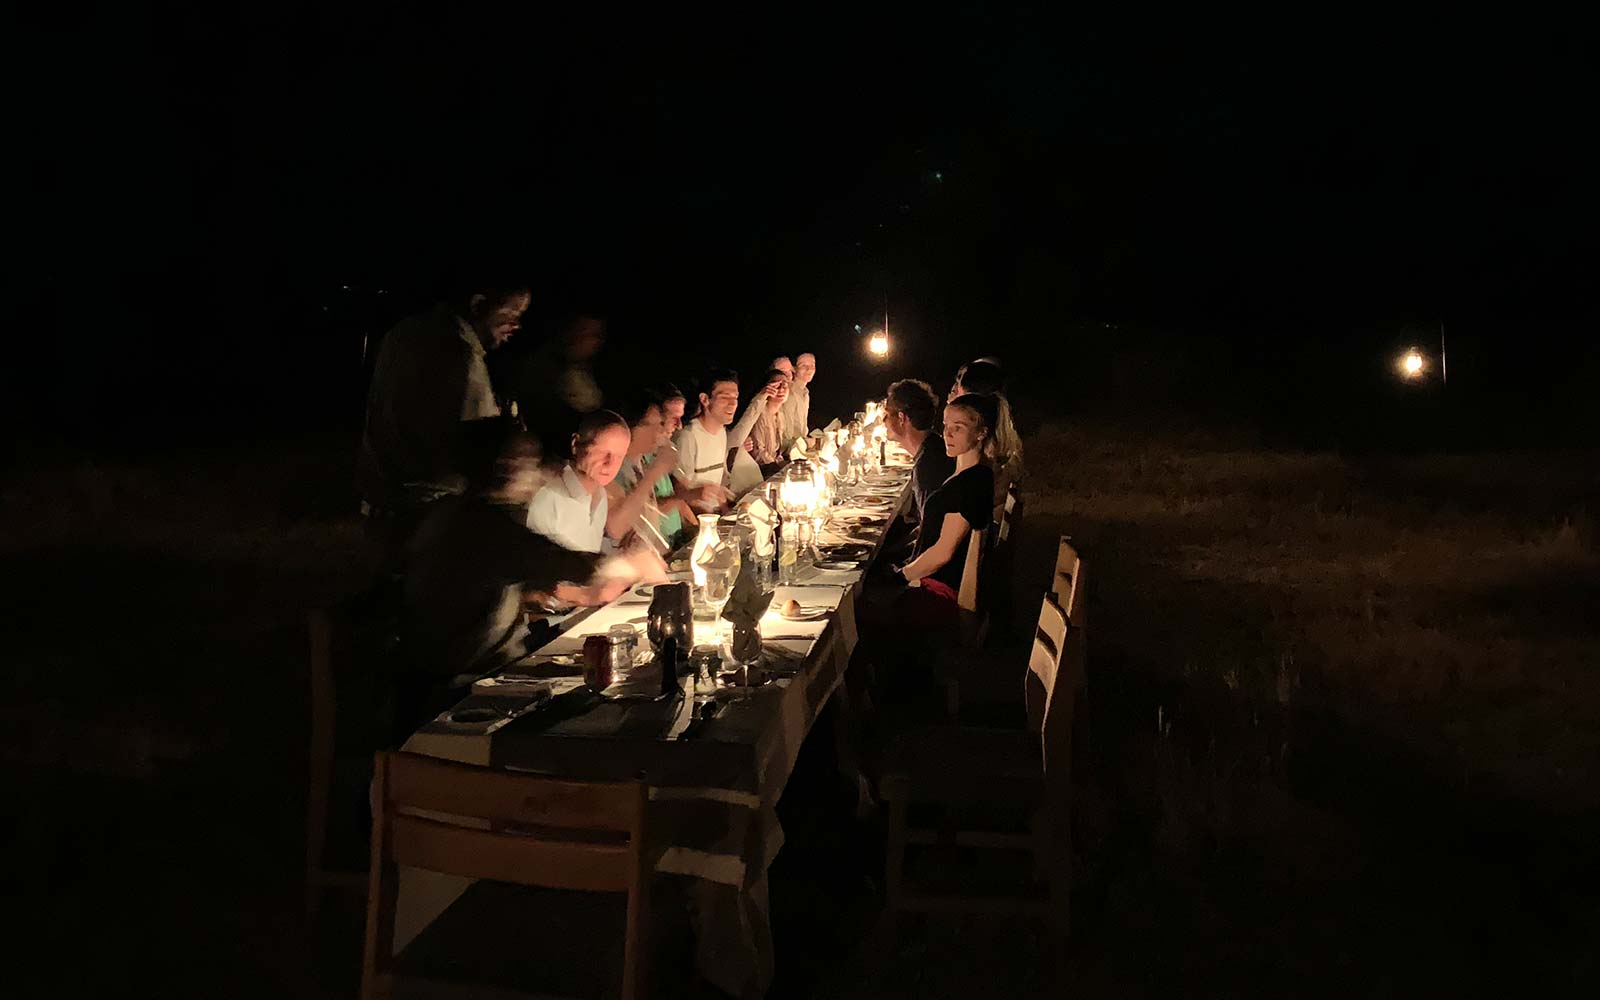 Dinner in the bush in Botswana, Africa. Cheetah, cubs & the most incredible dinner setting